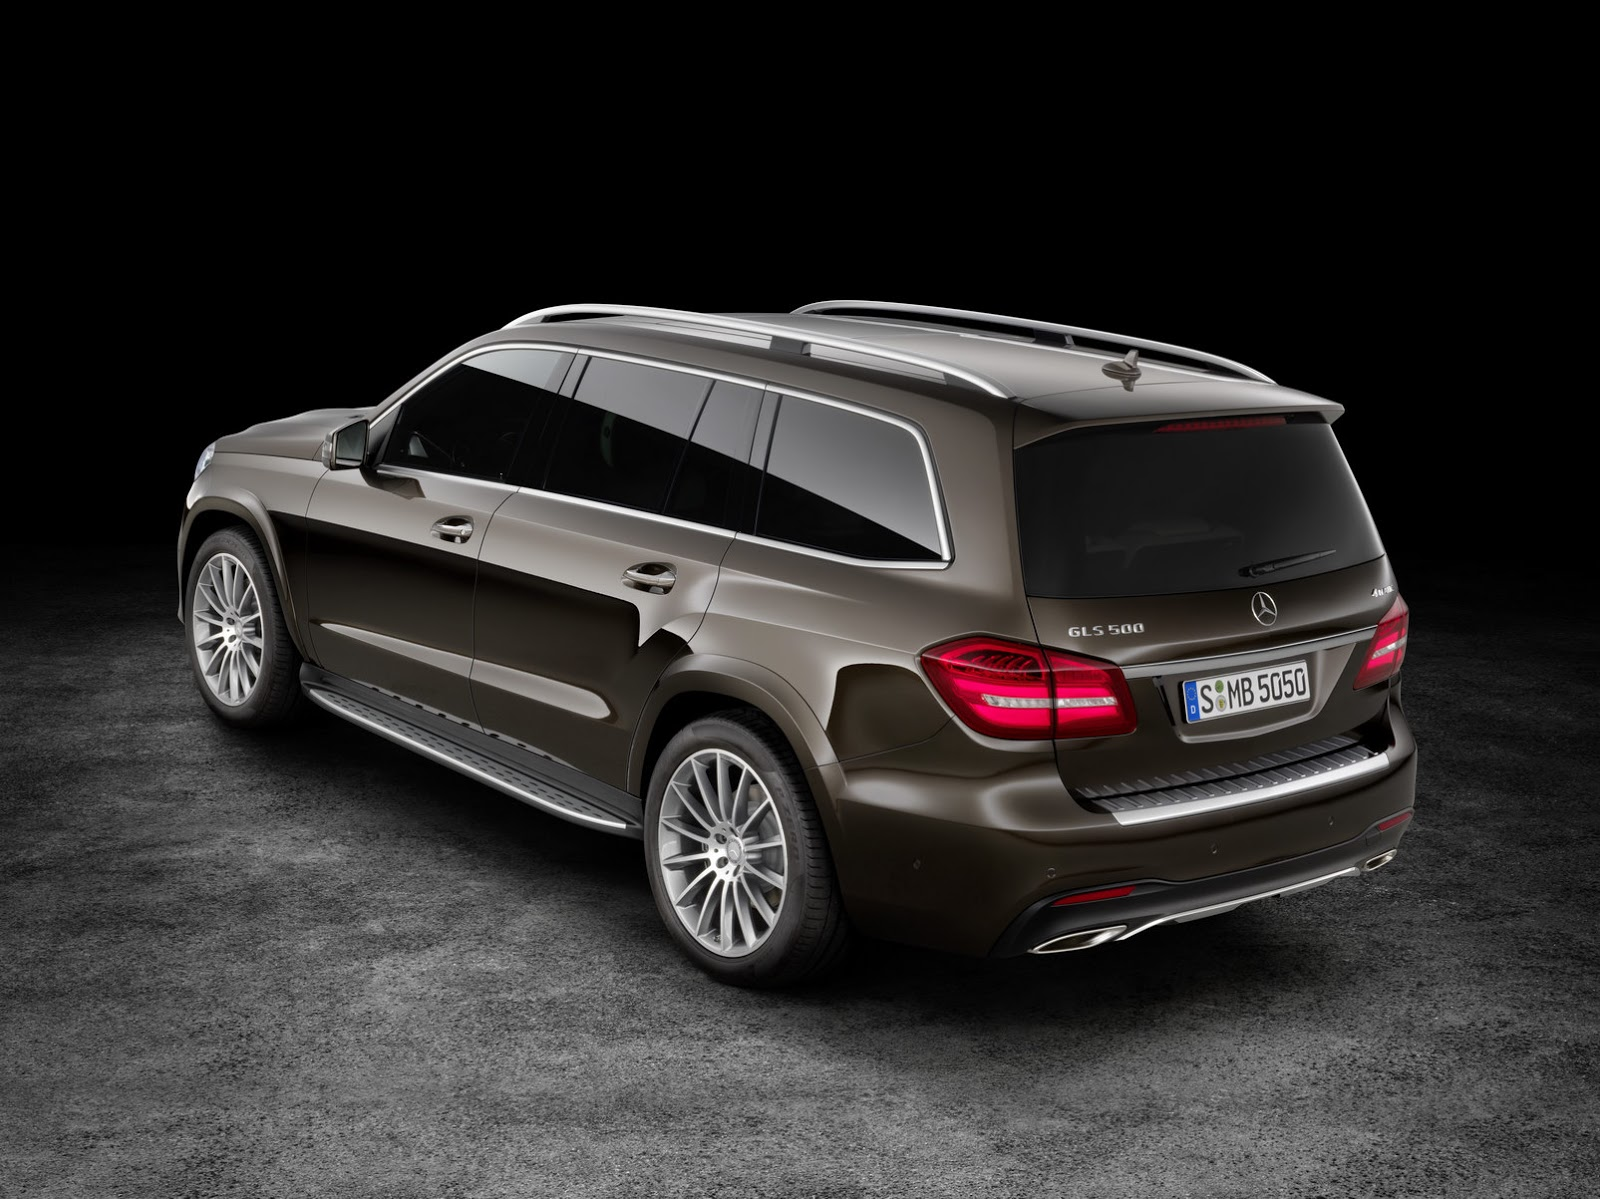 mercedes turns gl into 2017 gls says it s the s class of suvs 26 pics carscoops. Black Bedroom Furniture Sets. Home Design Ideas